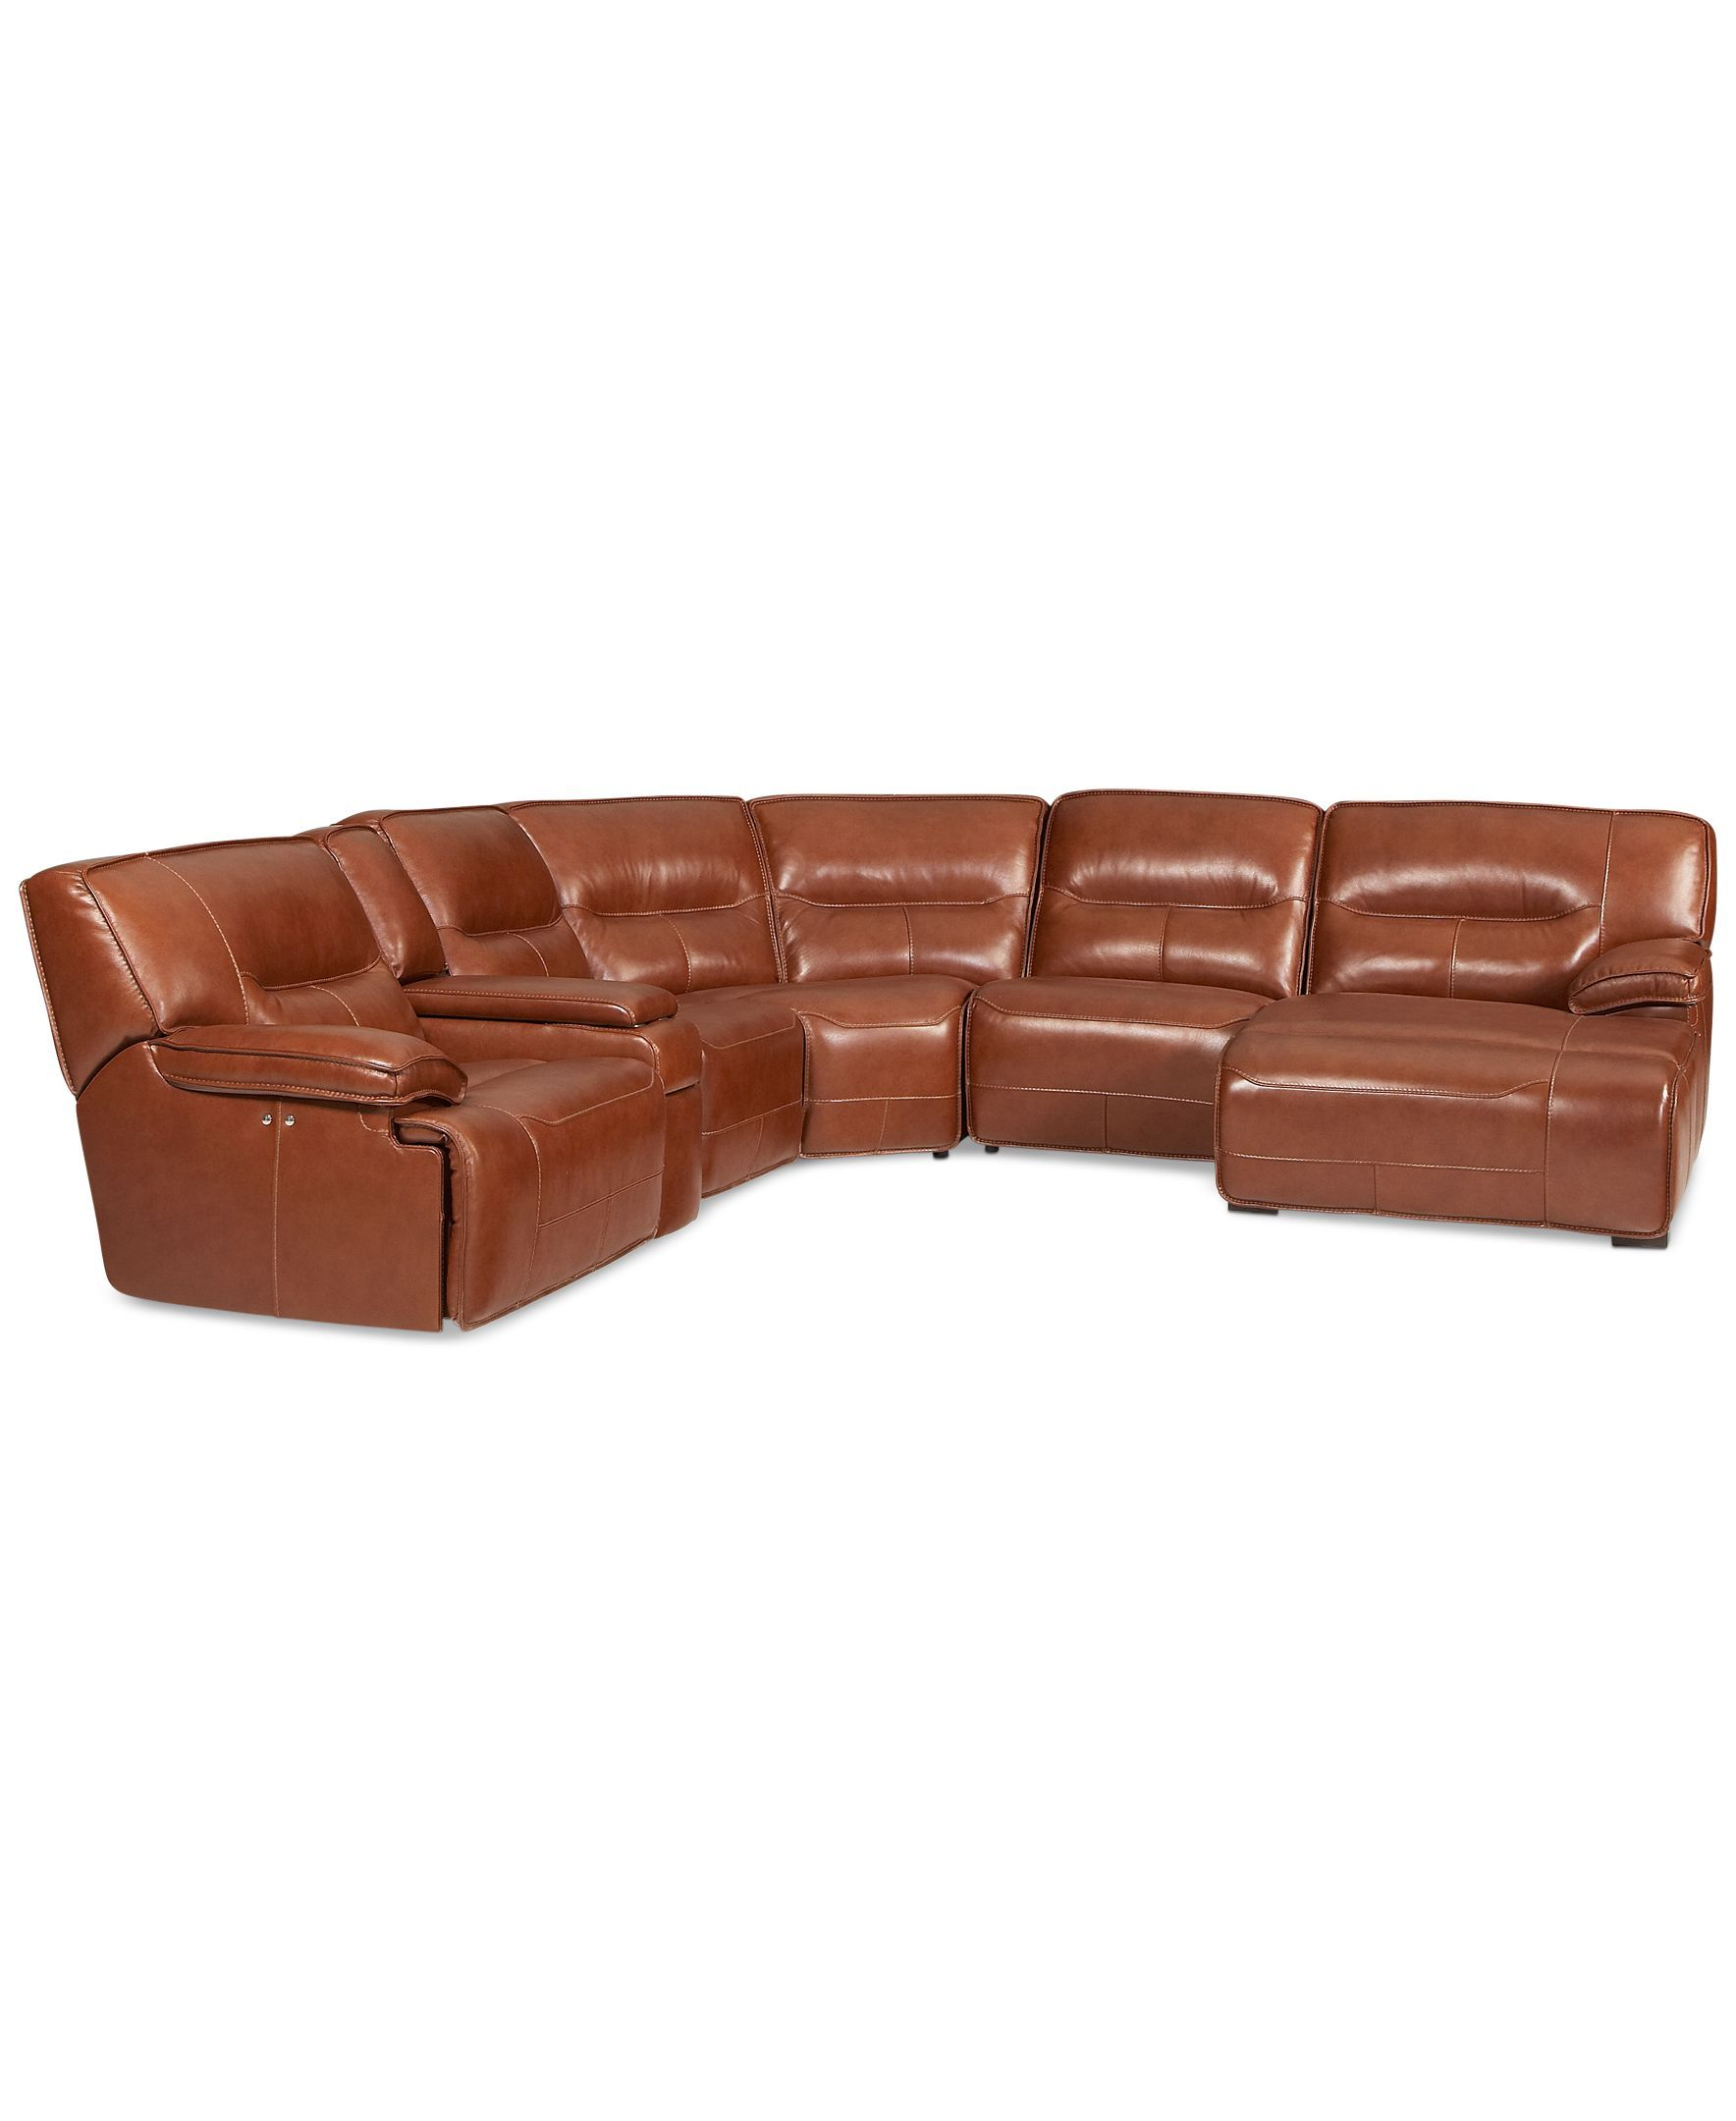 sectional sofas recliners southern motion reclining console sofa closeout beckett 6 pc leather with chaise piece 2 power